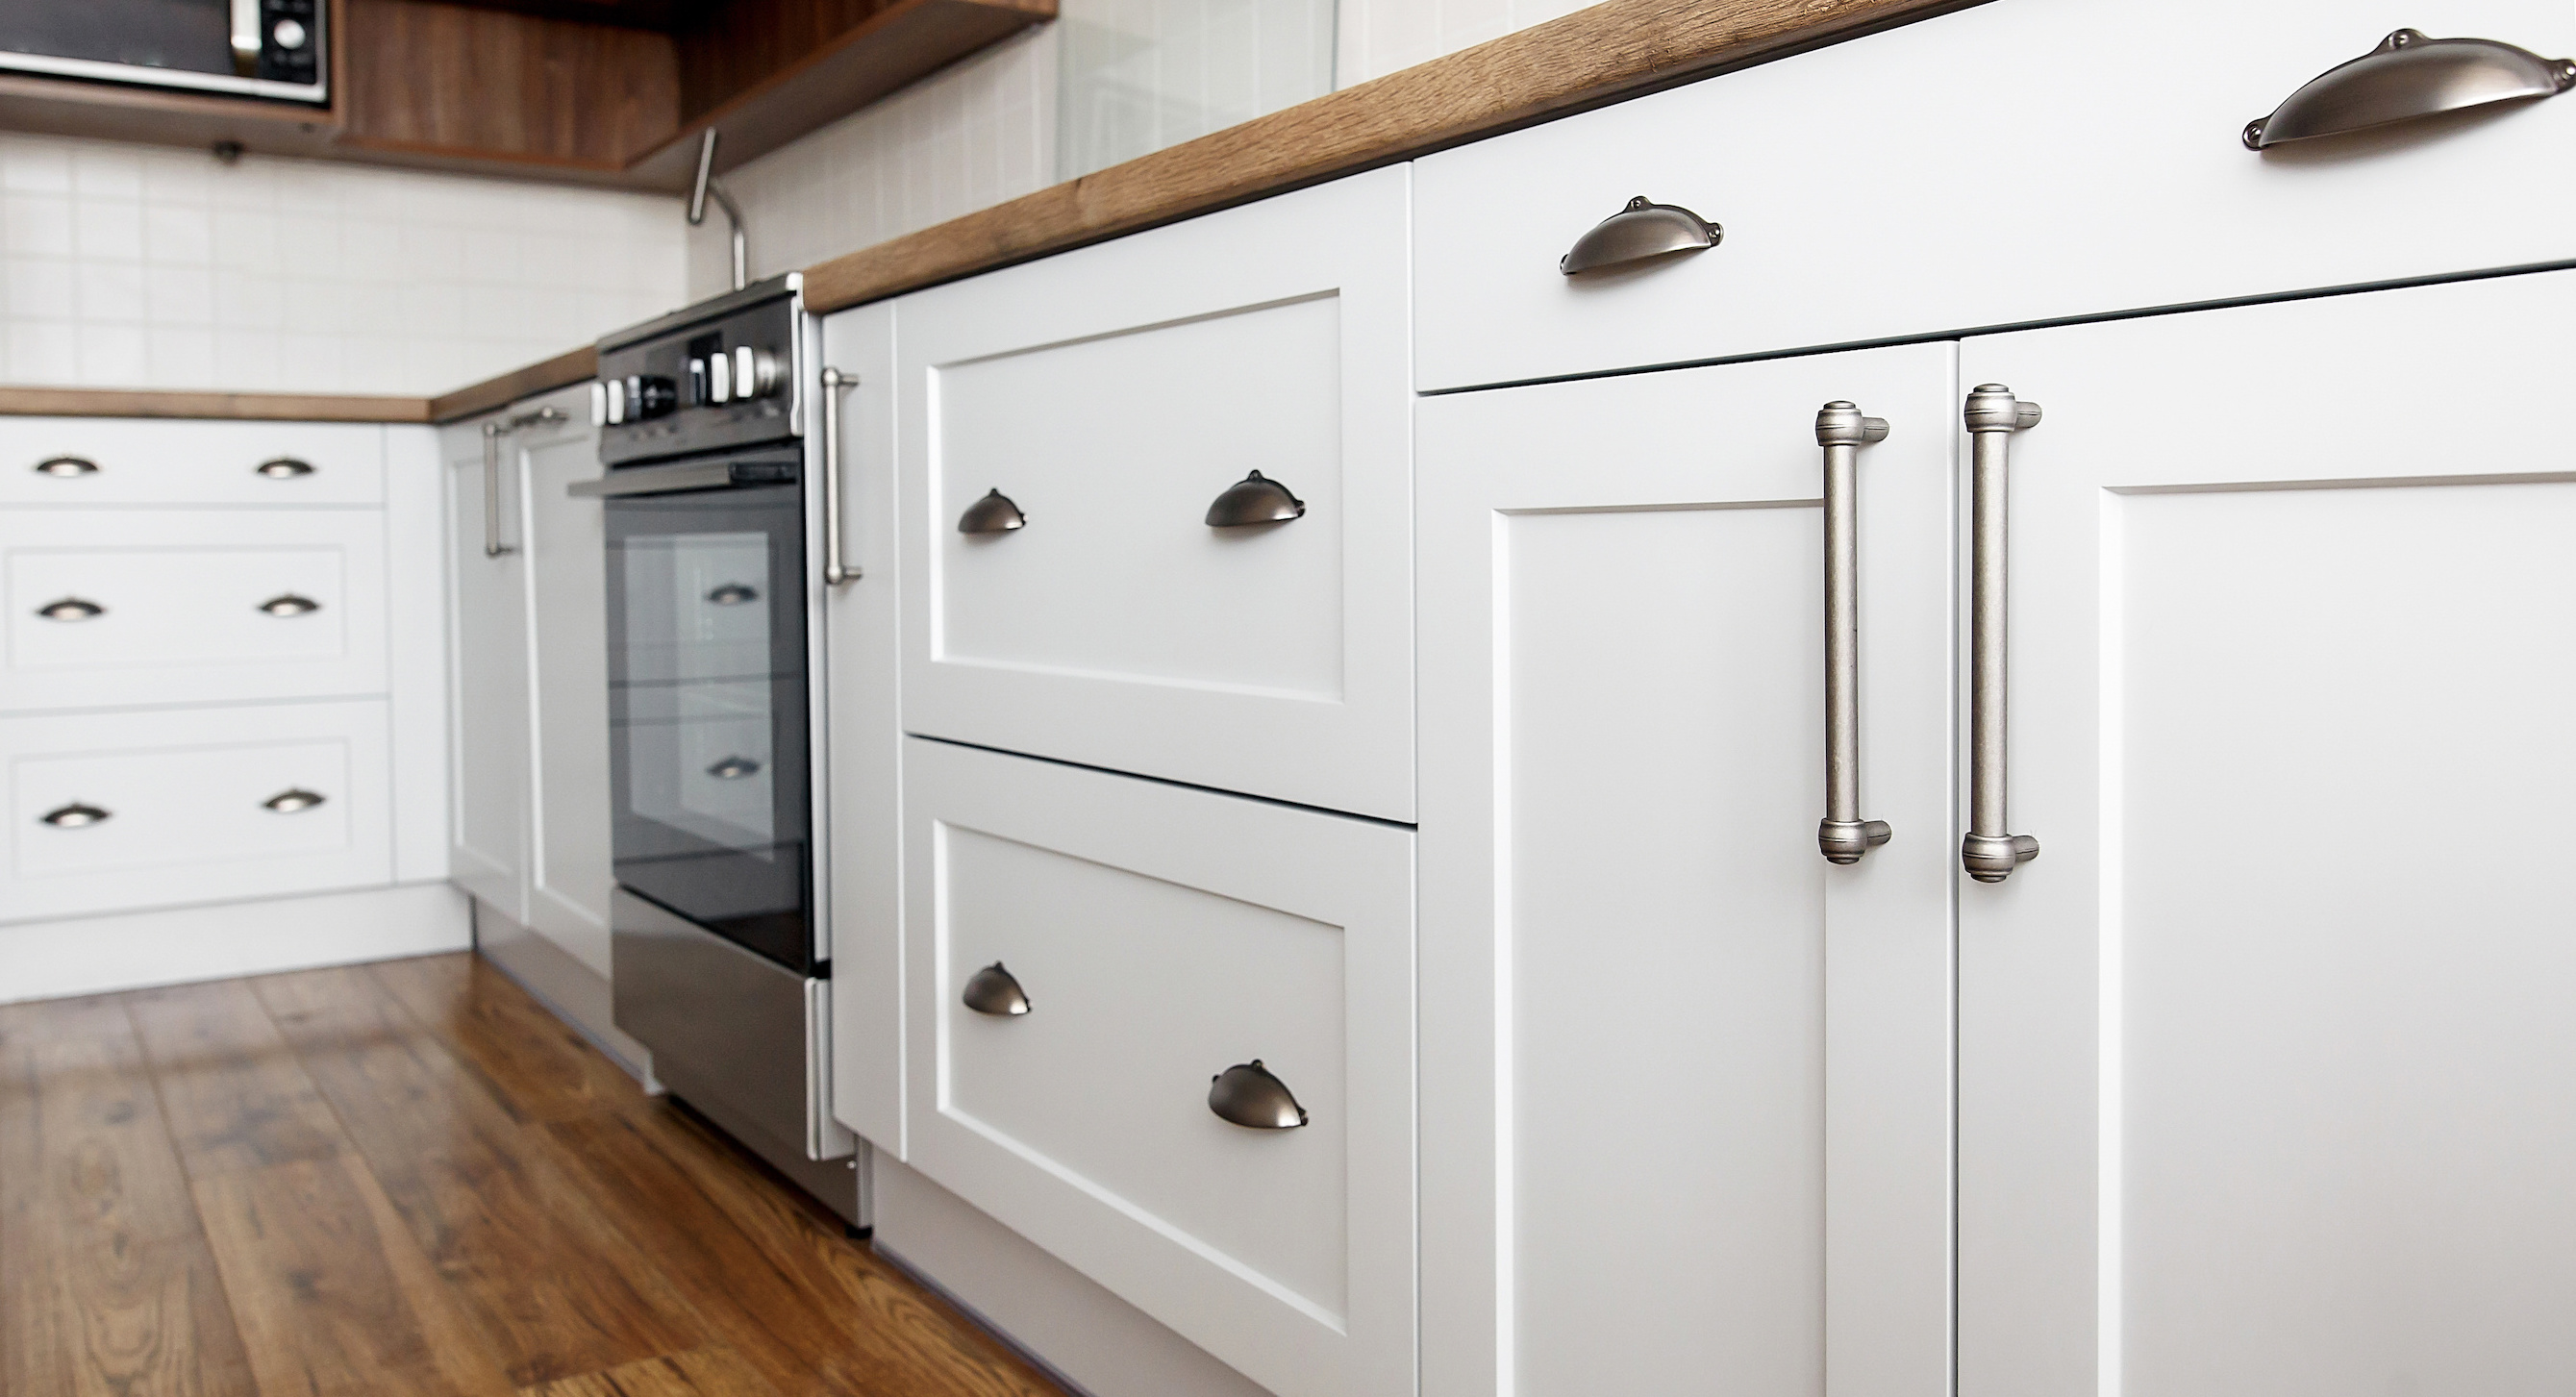 Cabinet Refinishing and Refacing Winter Park FL